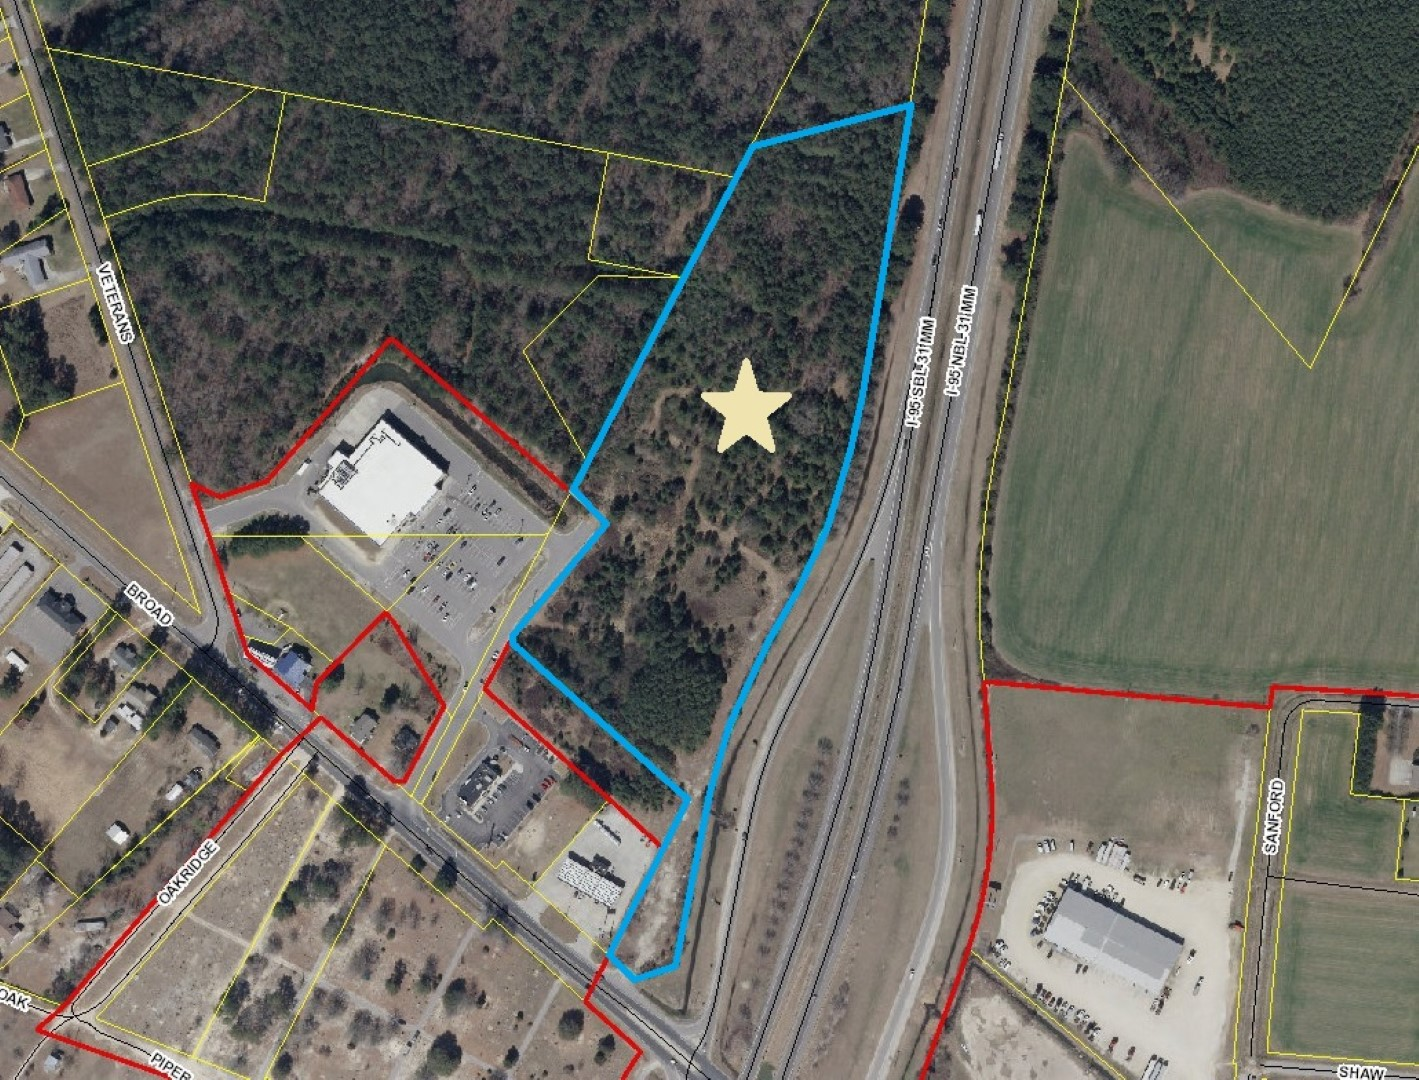 St Paul Nc Map.Broad Street St Pauls Nc 28384 Franklin Johnson Commercial Real